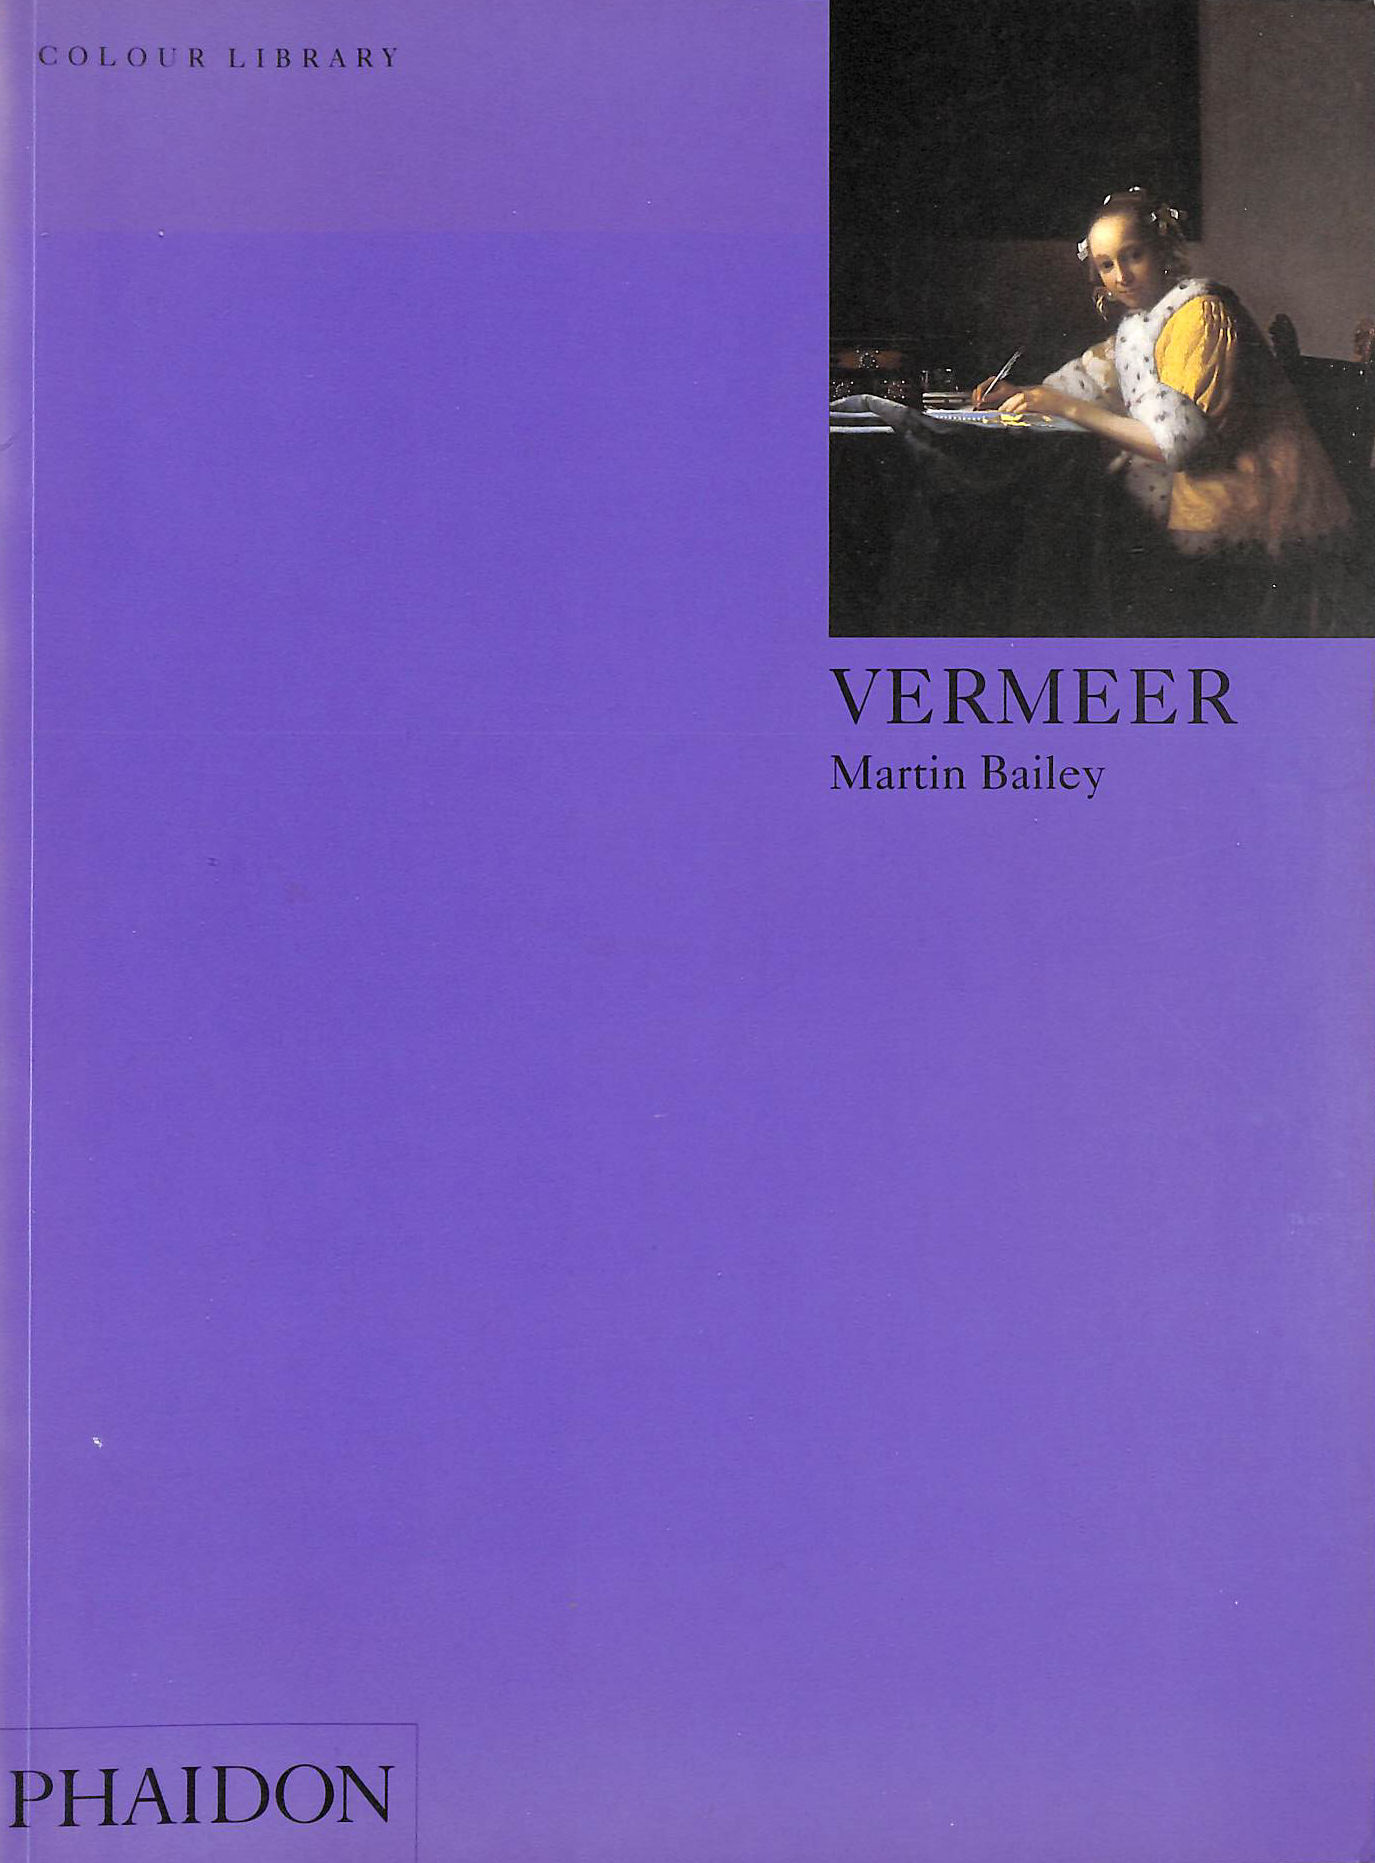 Image for Vermeer (Colour library)